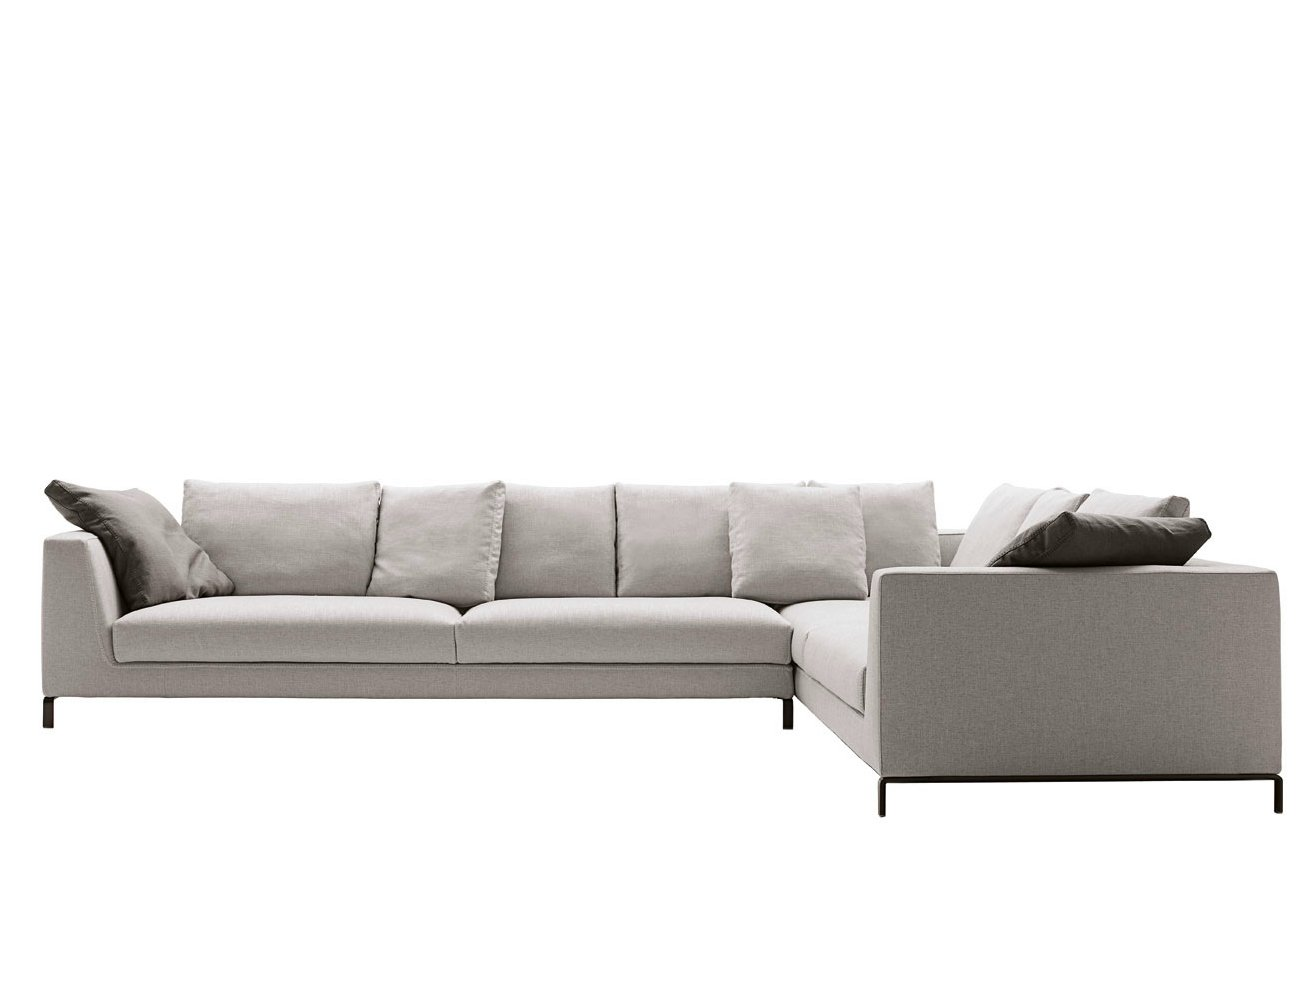 ray sectional sofa by b b italia design antonio citterio. Black Bedroom Furniture Sets. Home Design Ideas